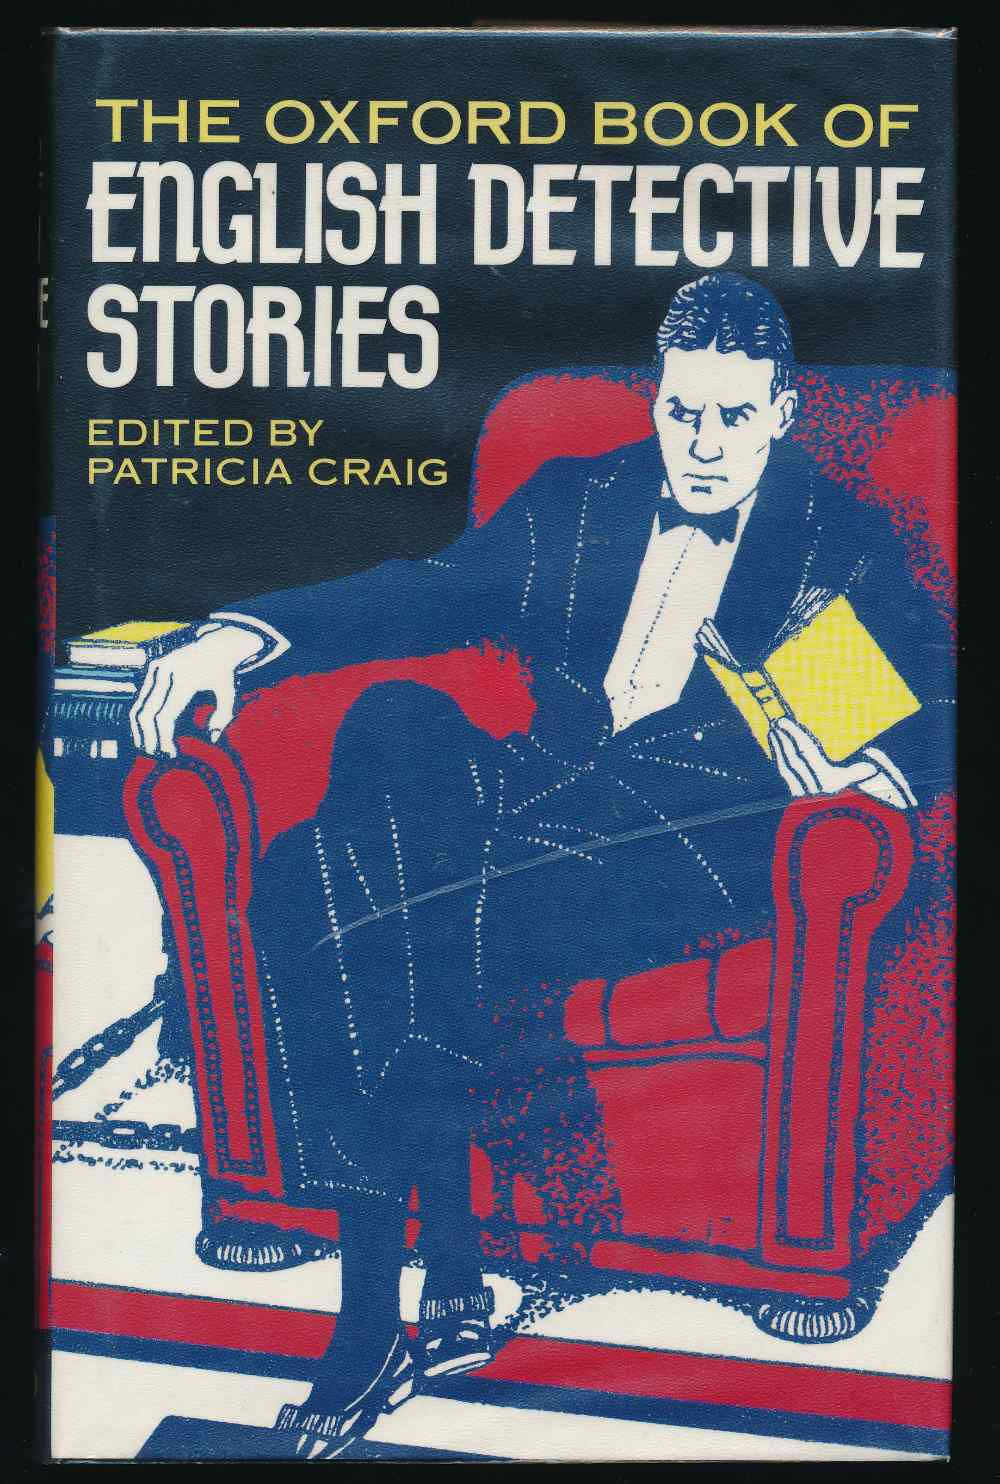 The Oxford book of British detective stories